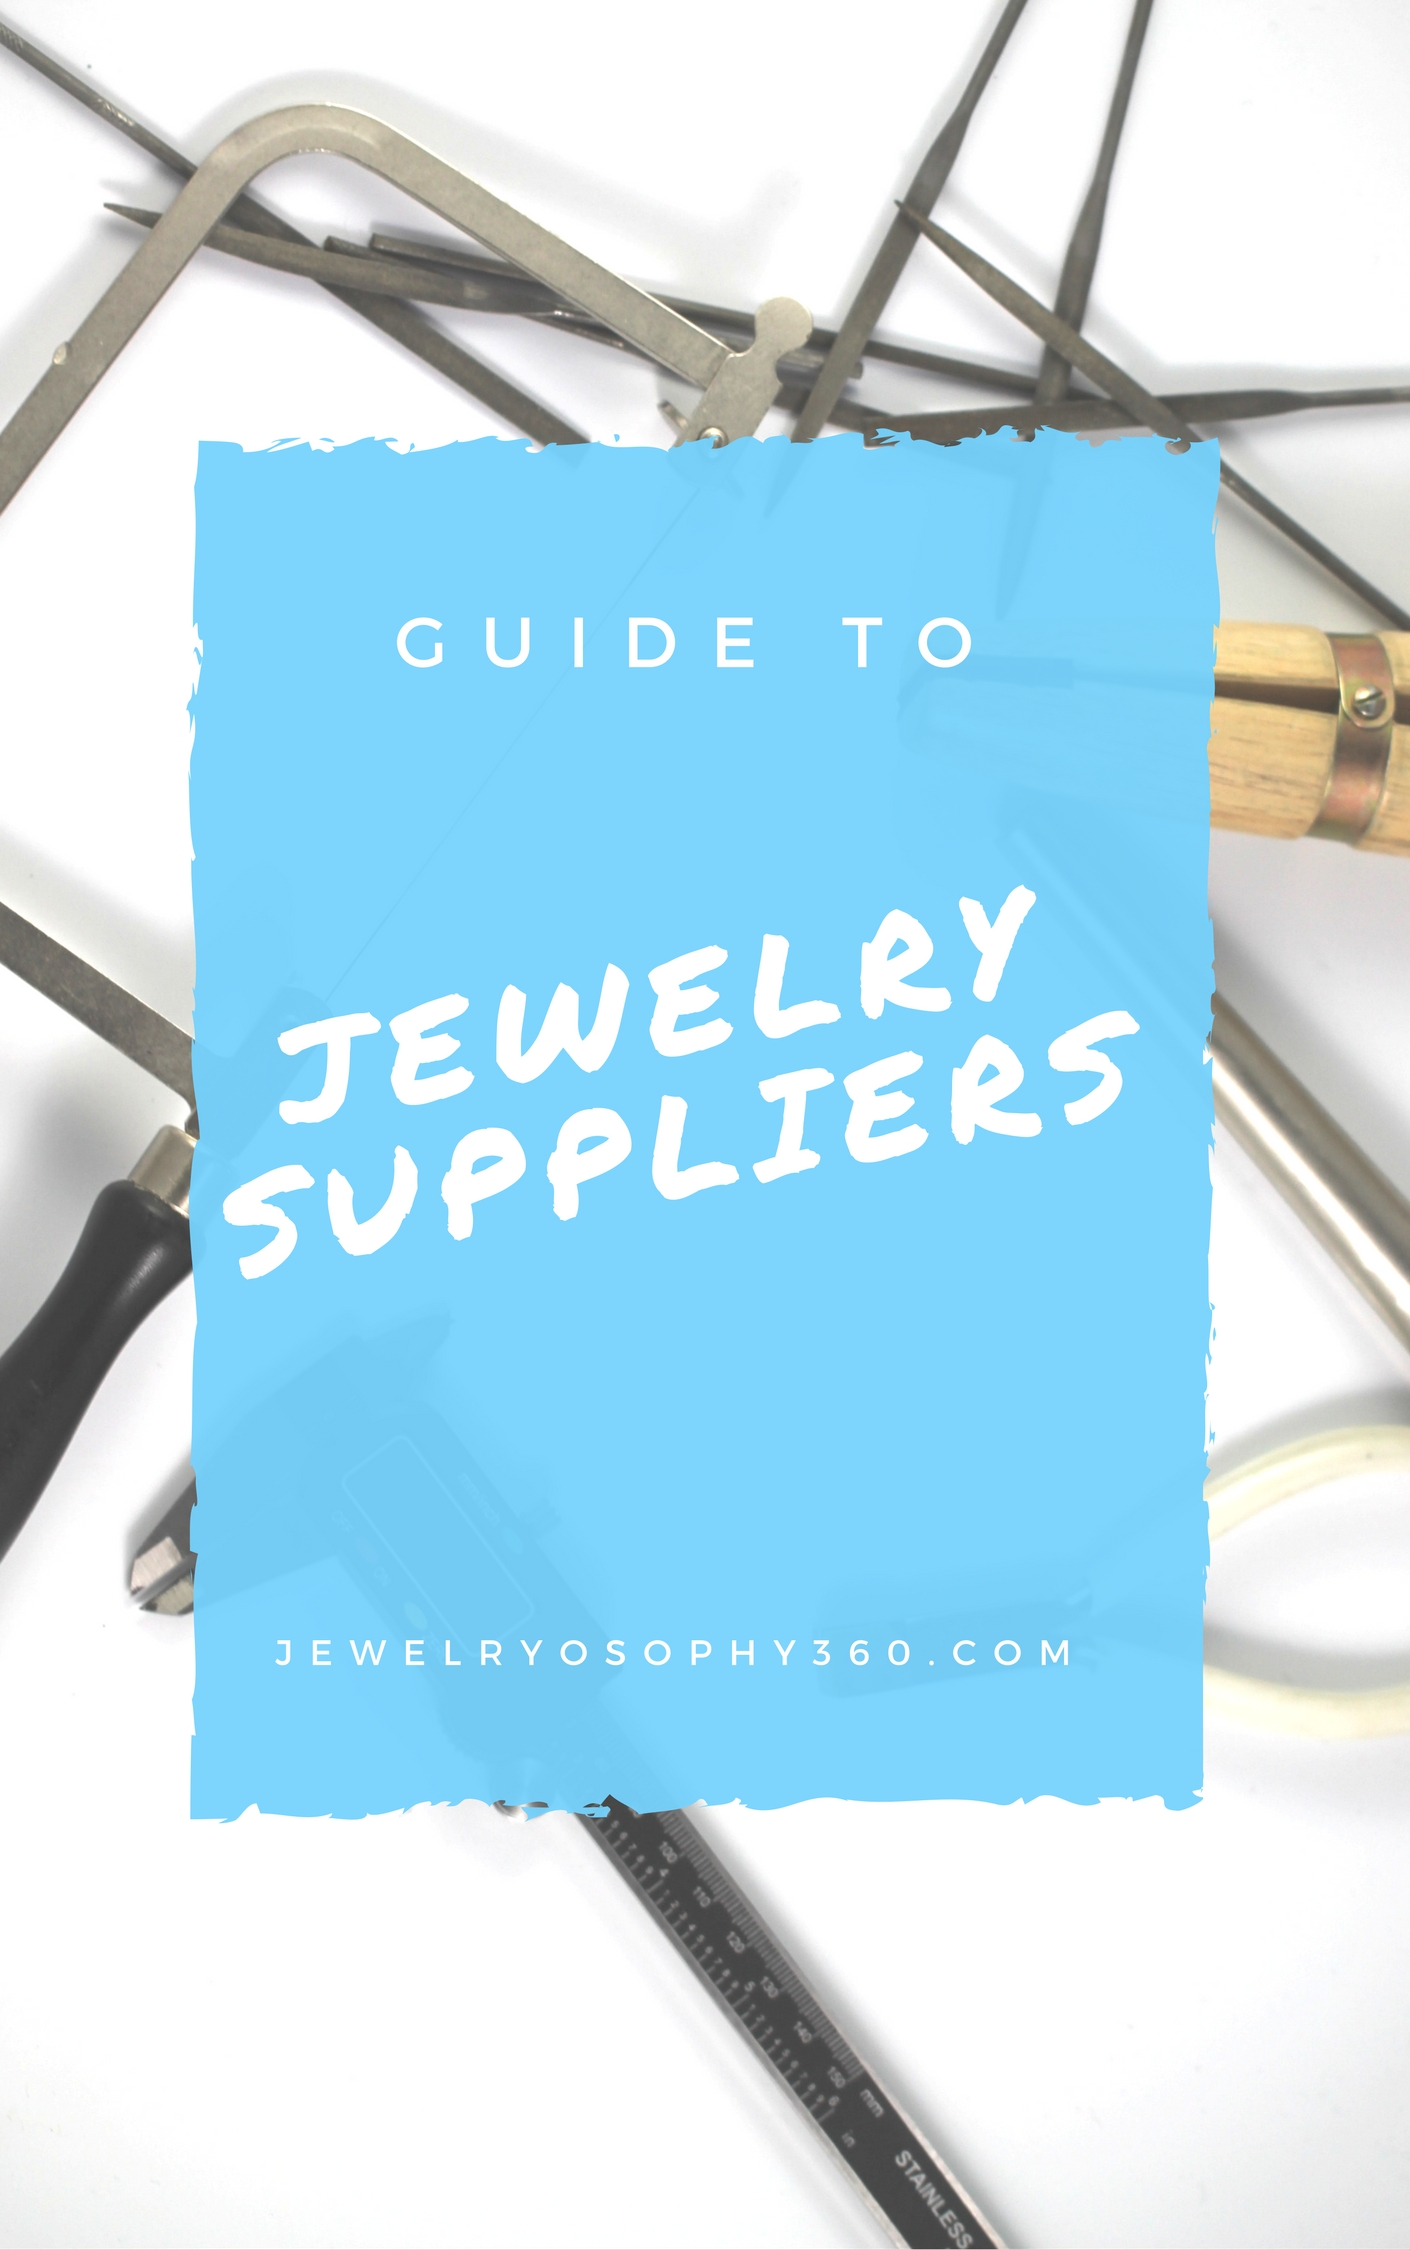 jewelerysuppliers.jpg